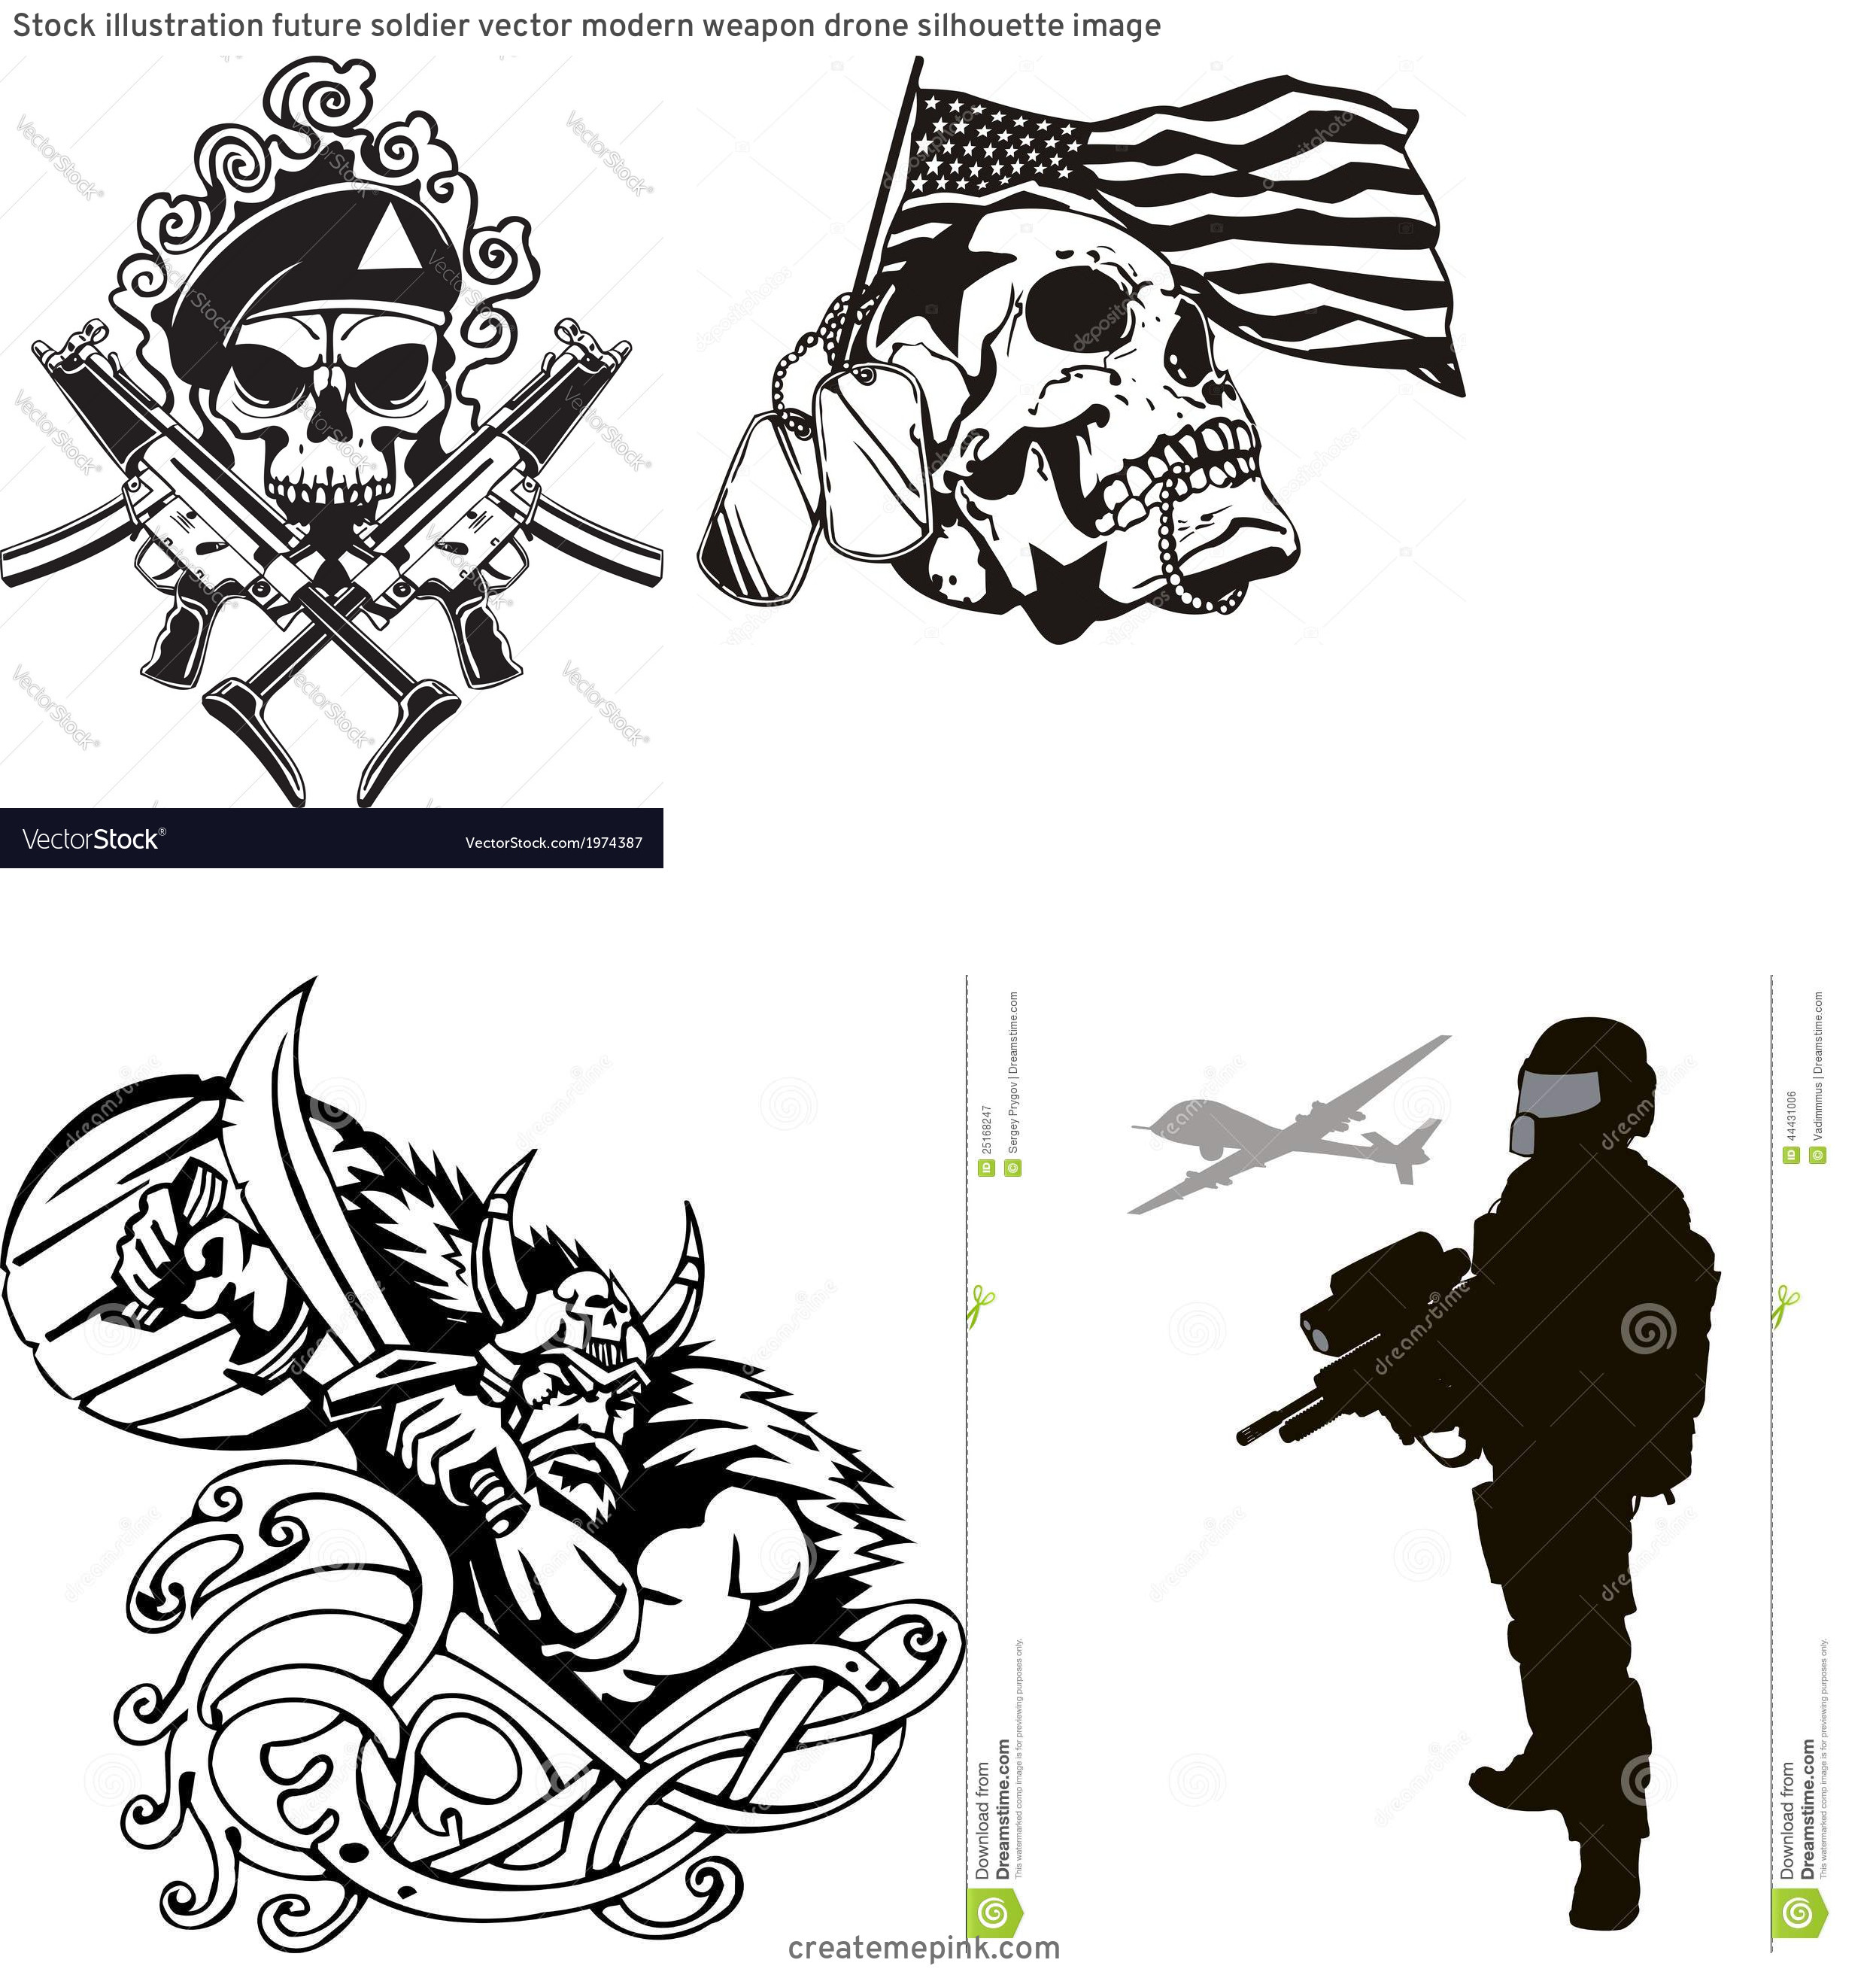 Soldier Vector Vinyl: Stock Illustration Future Soldier Vector Modern Weapon Drone Silhouette Image